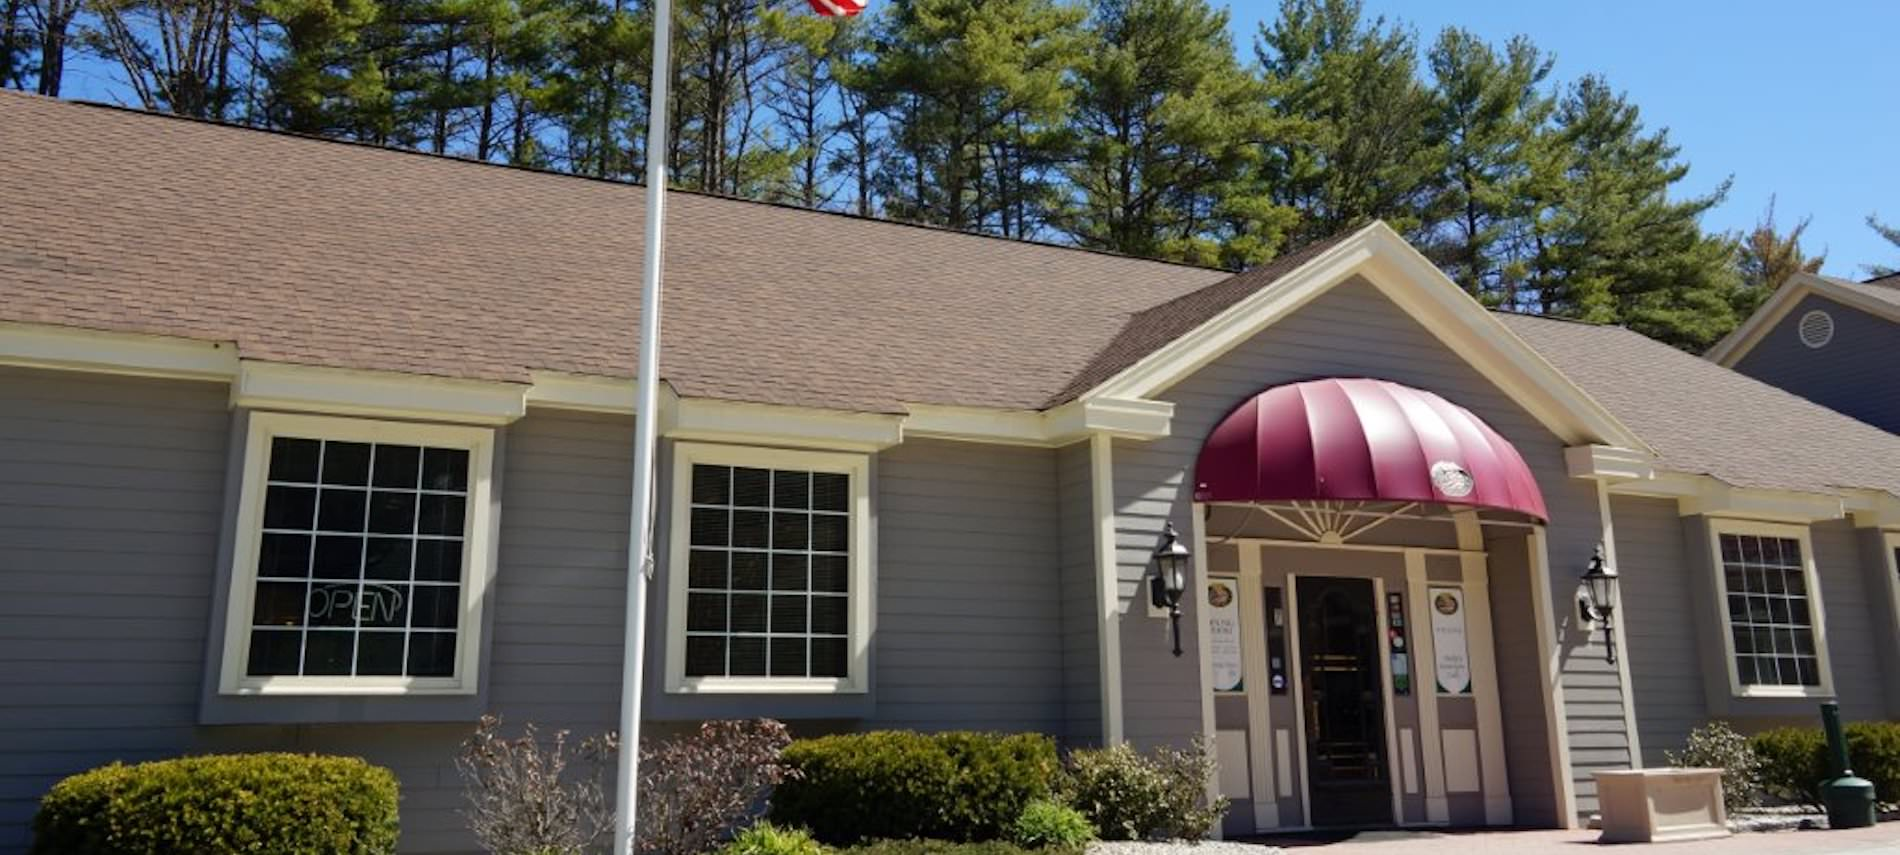 Exterior of Brady's American Grill - sided building with maroon awning, tall pines and blue skies